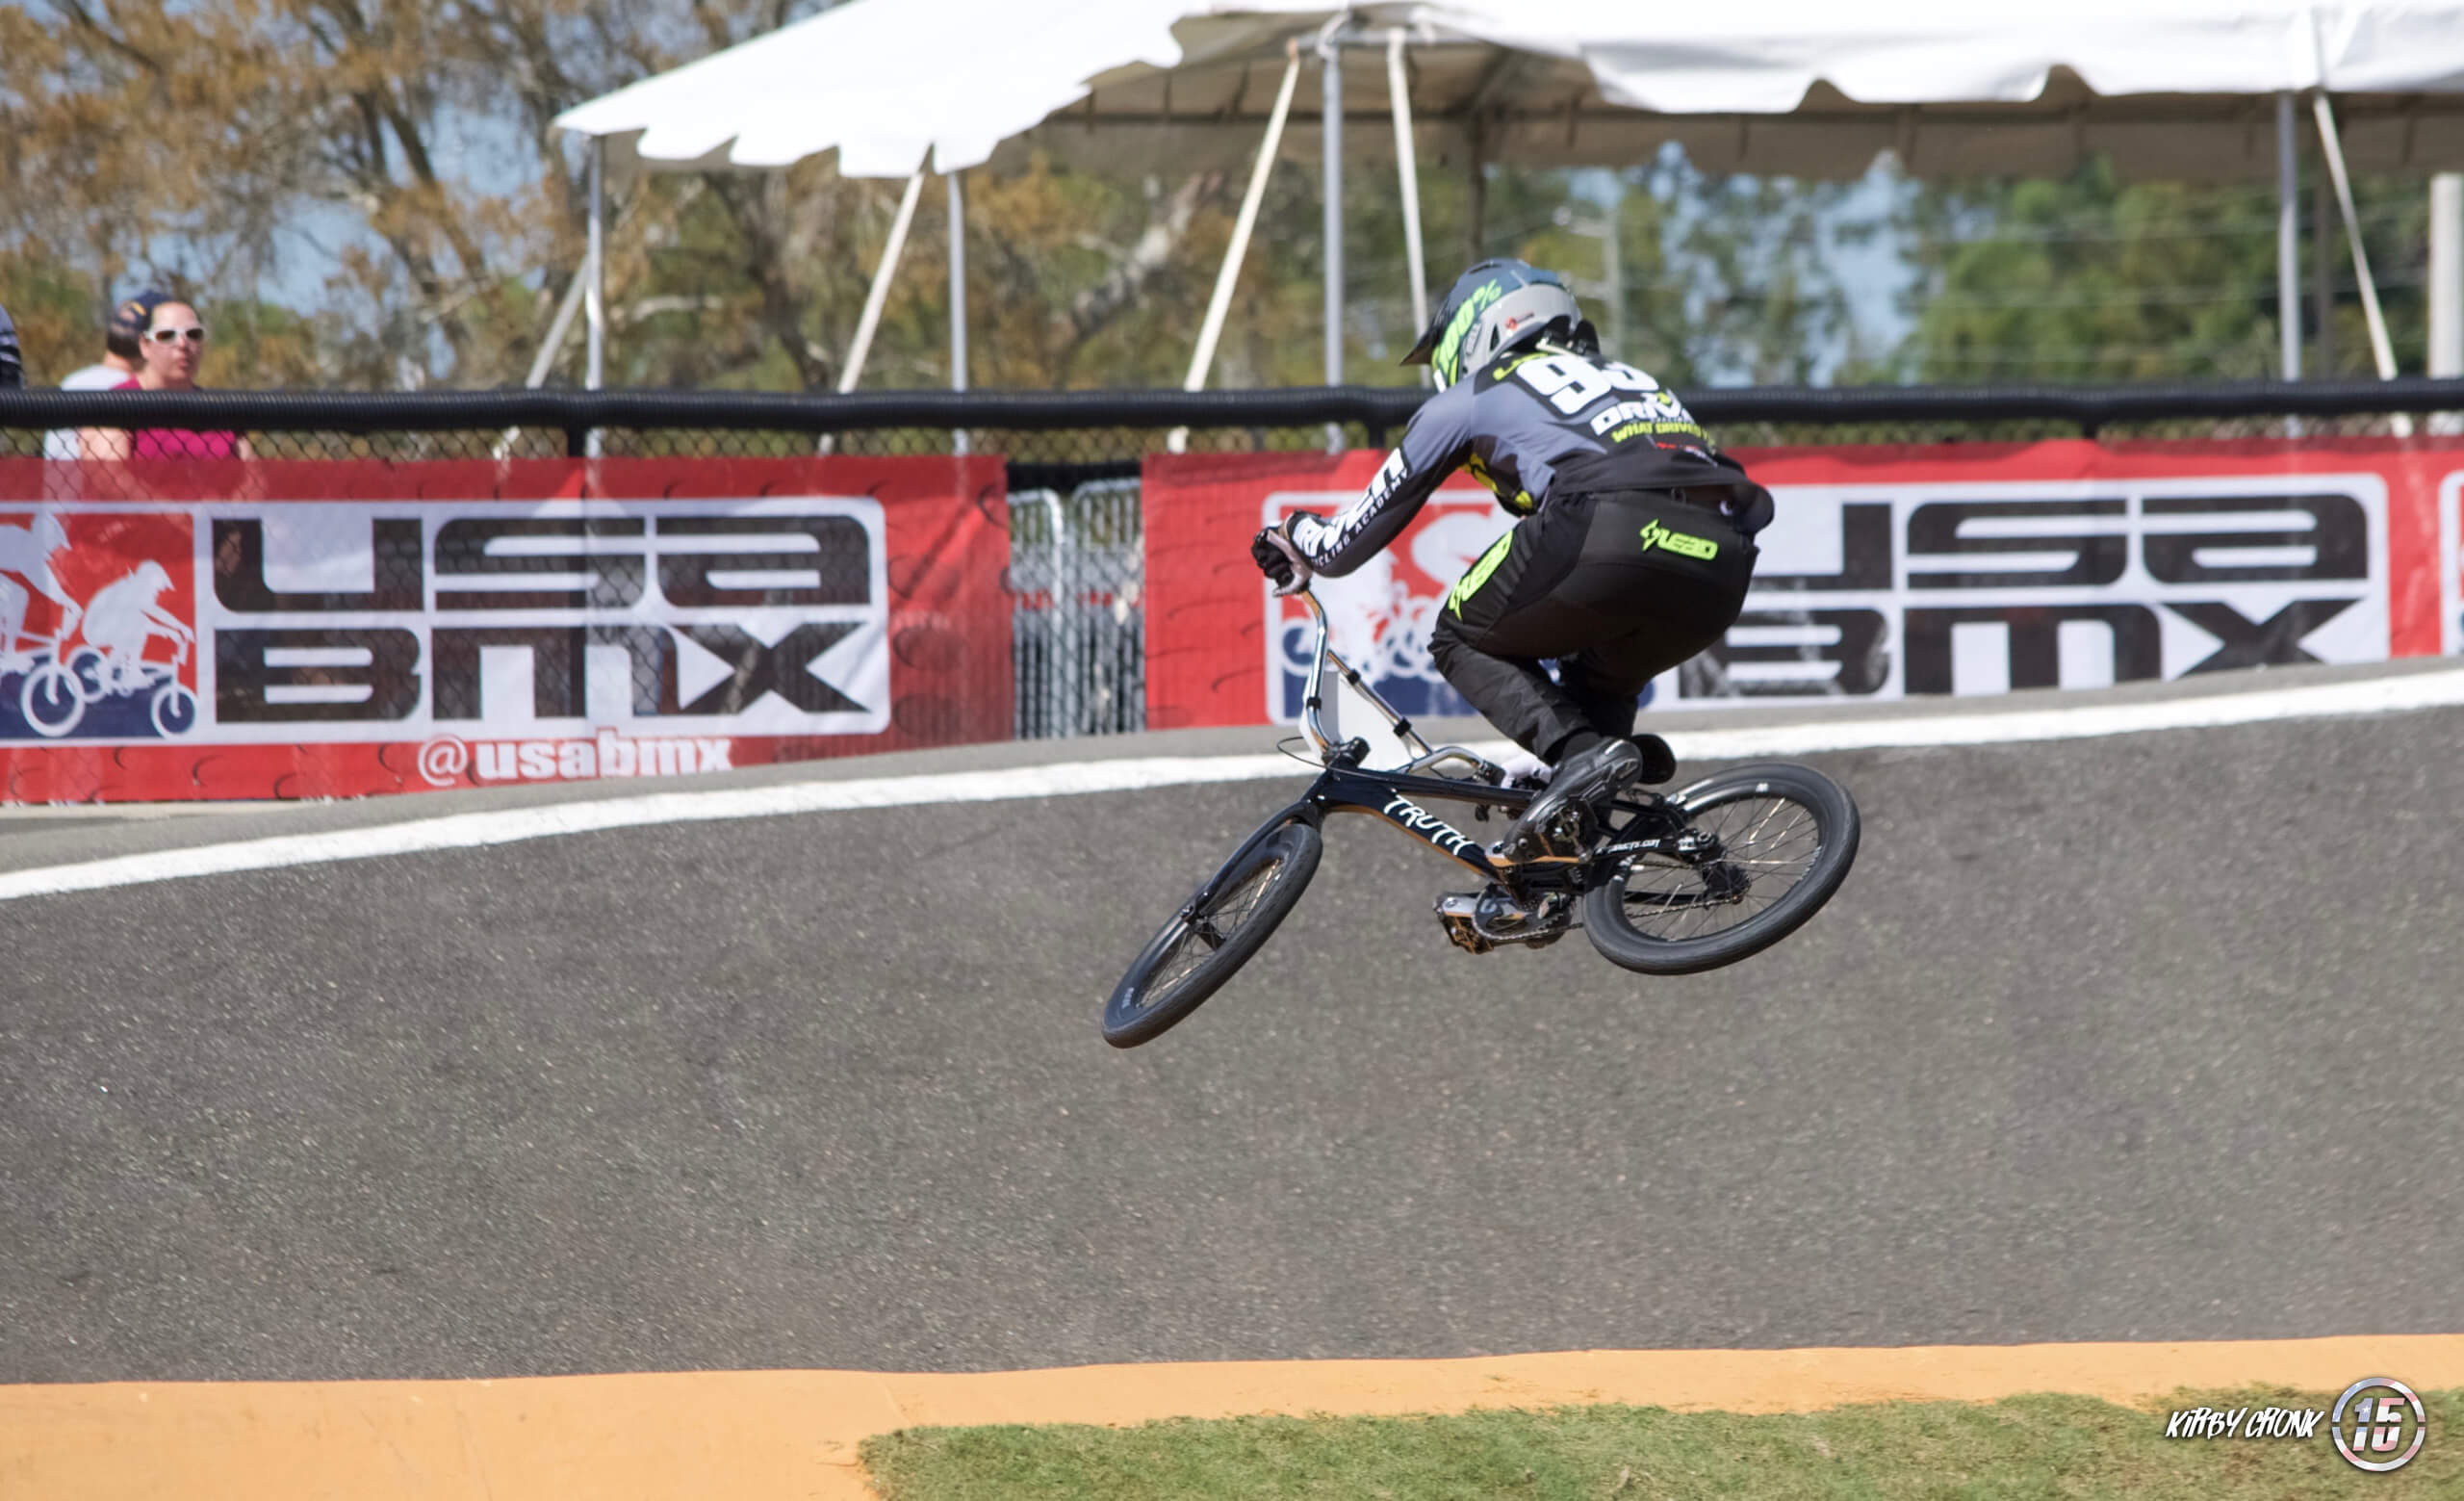 Jeff Upshaw Gator Nationals - Kirby Cronk - Fifteen BMX